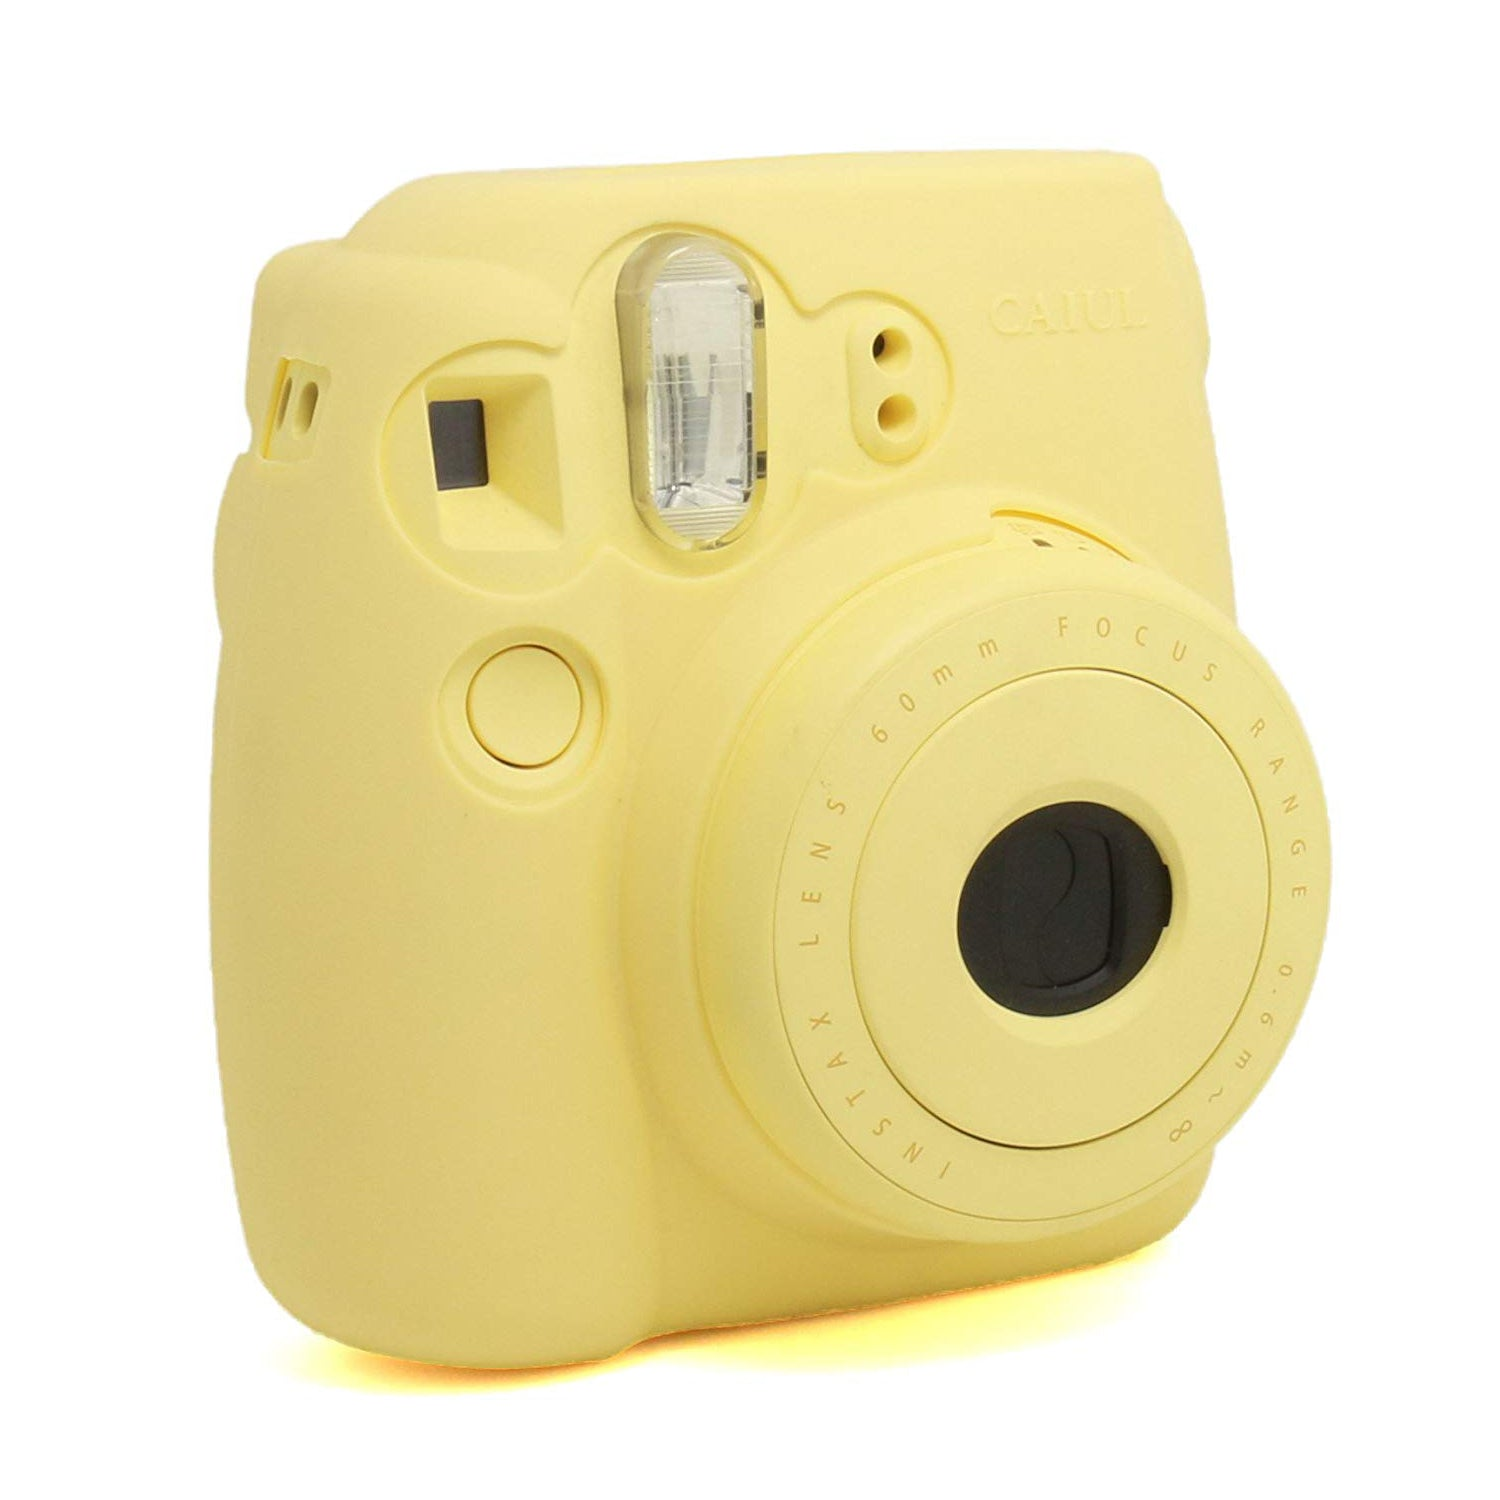 CAIUL Fashion Camera Case For Fujinfilm Instax Mini 8, Silica Gel Material, Yellow